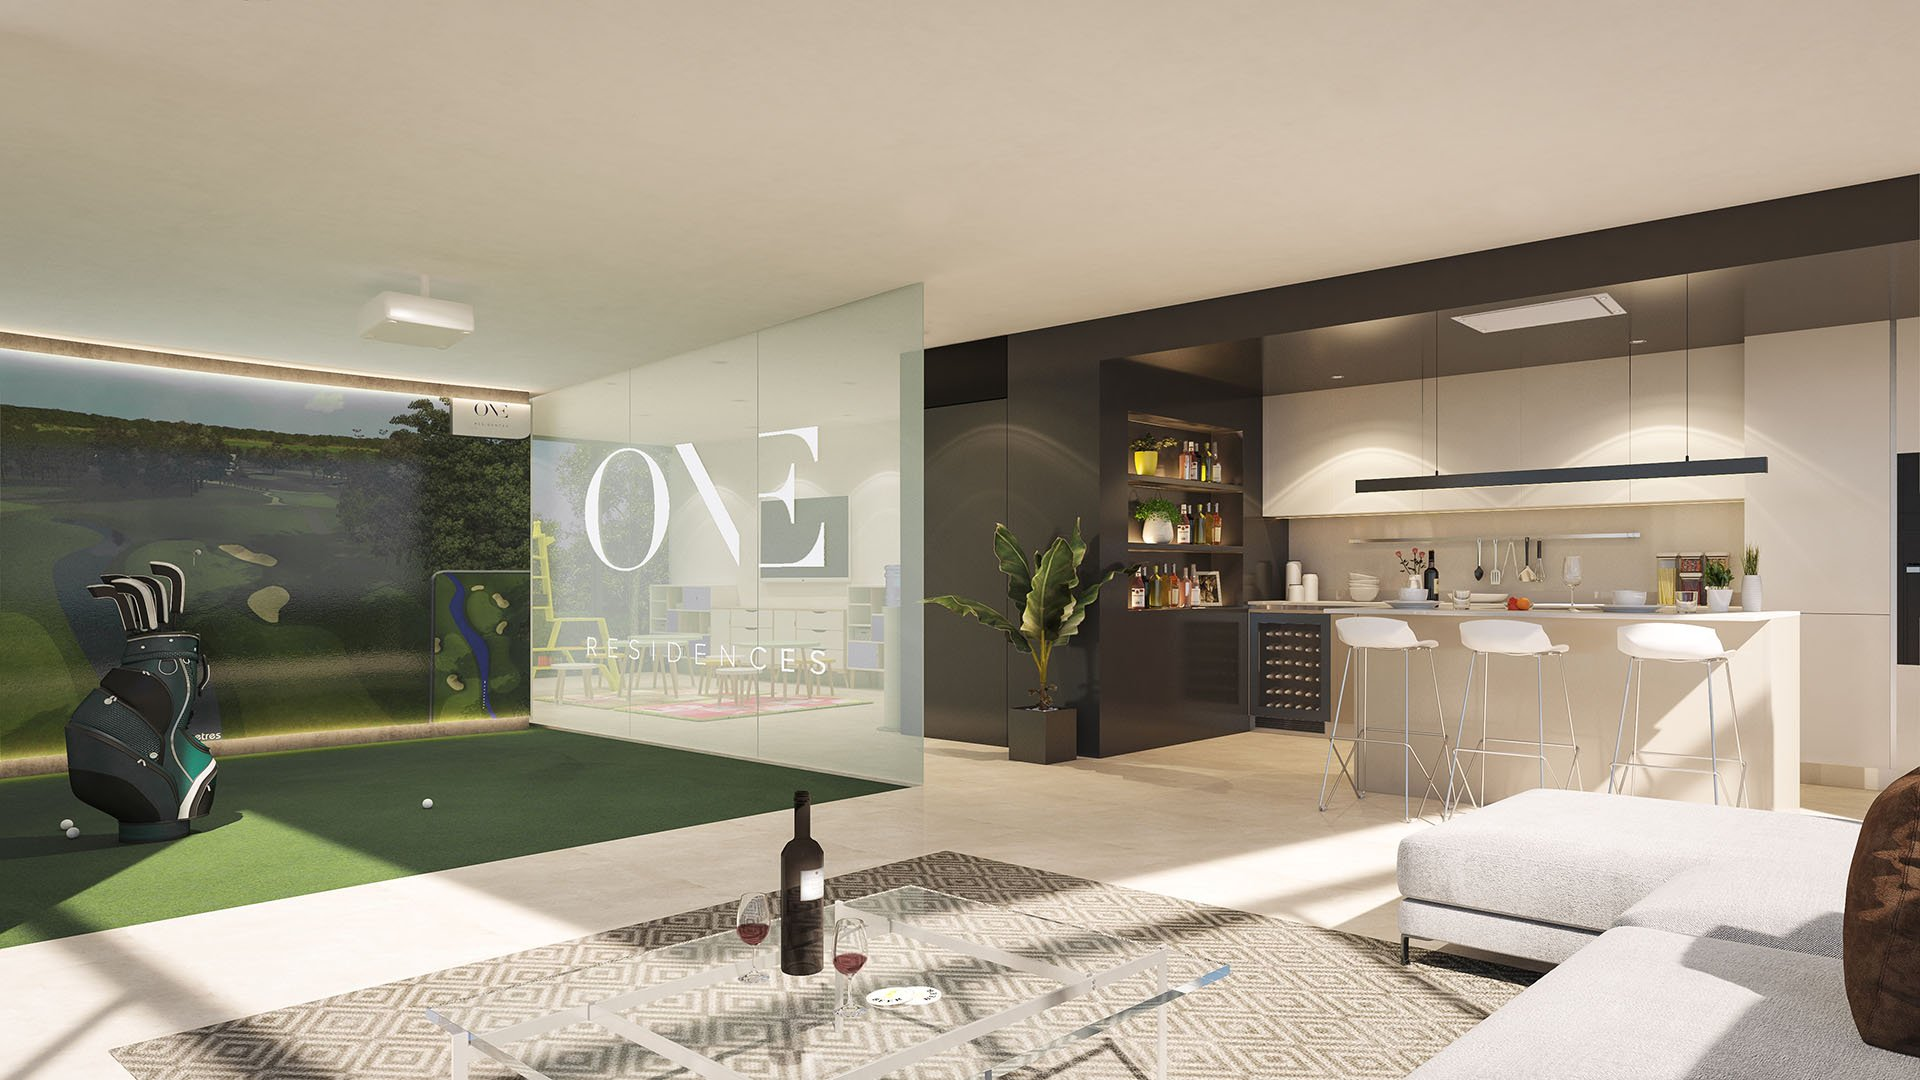 One Residences: Front line luxury golf penthouses in Calanova Golf